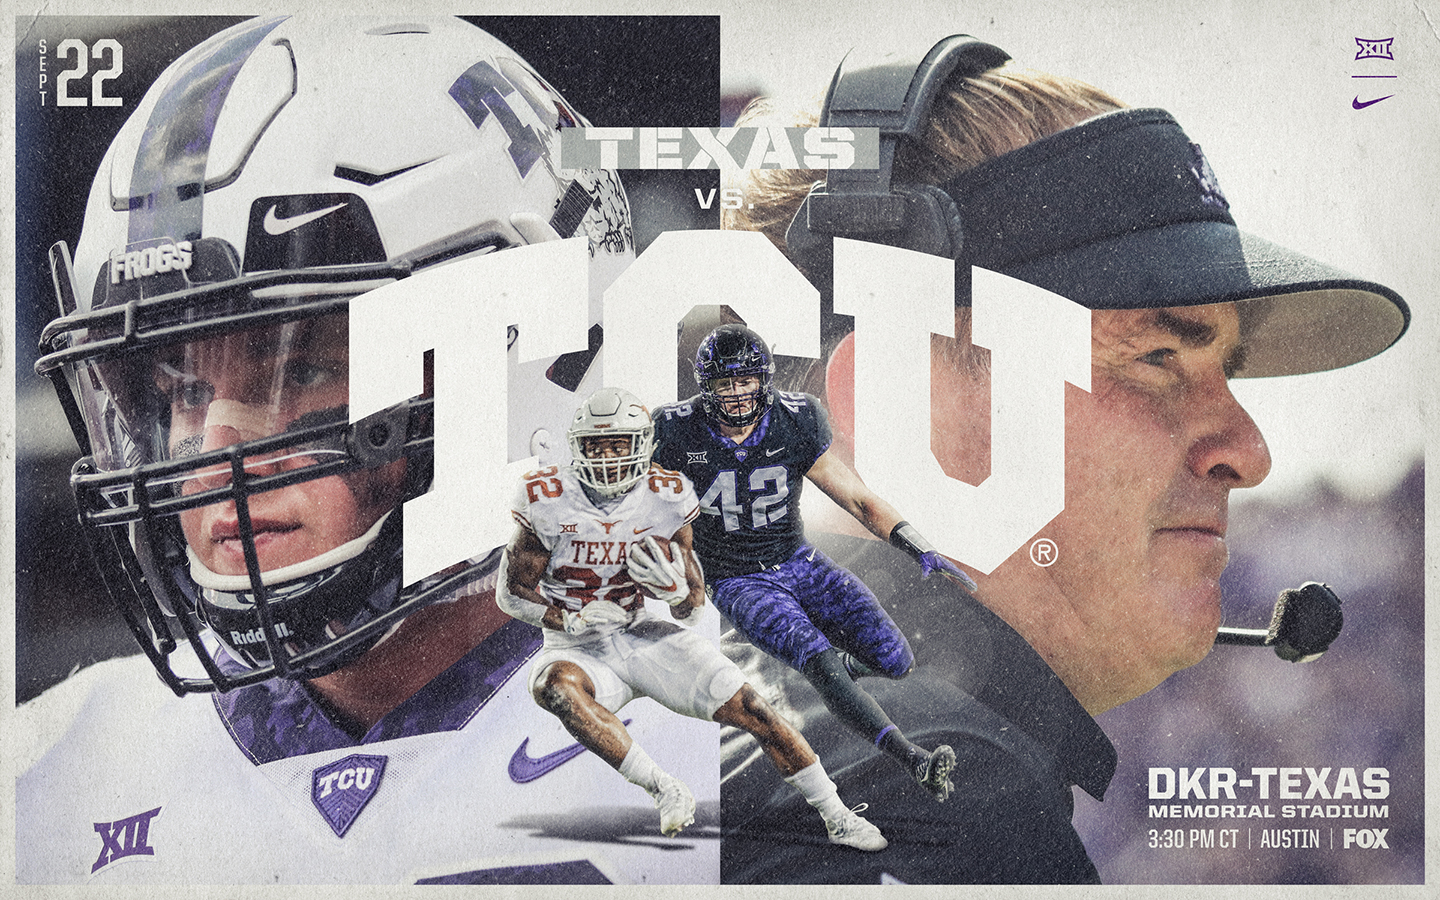 TCU vs Texas